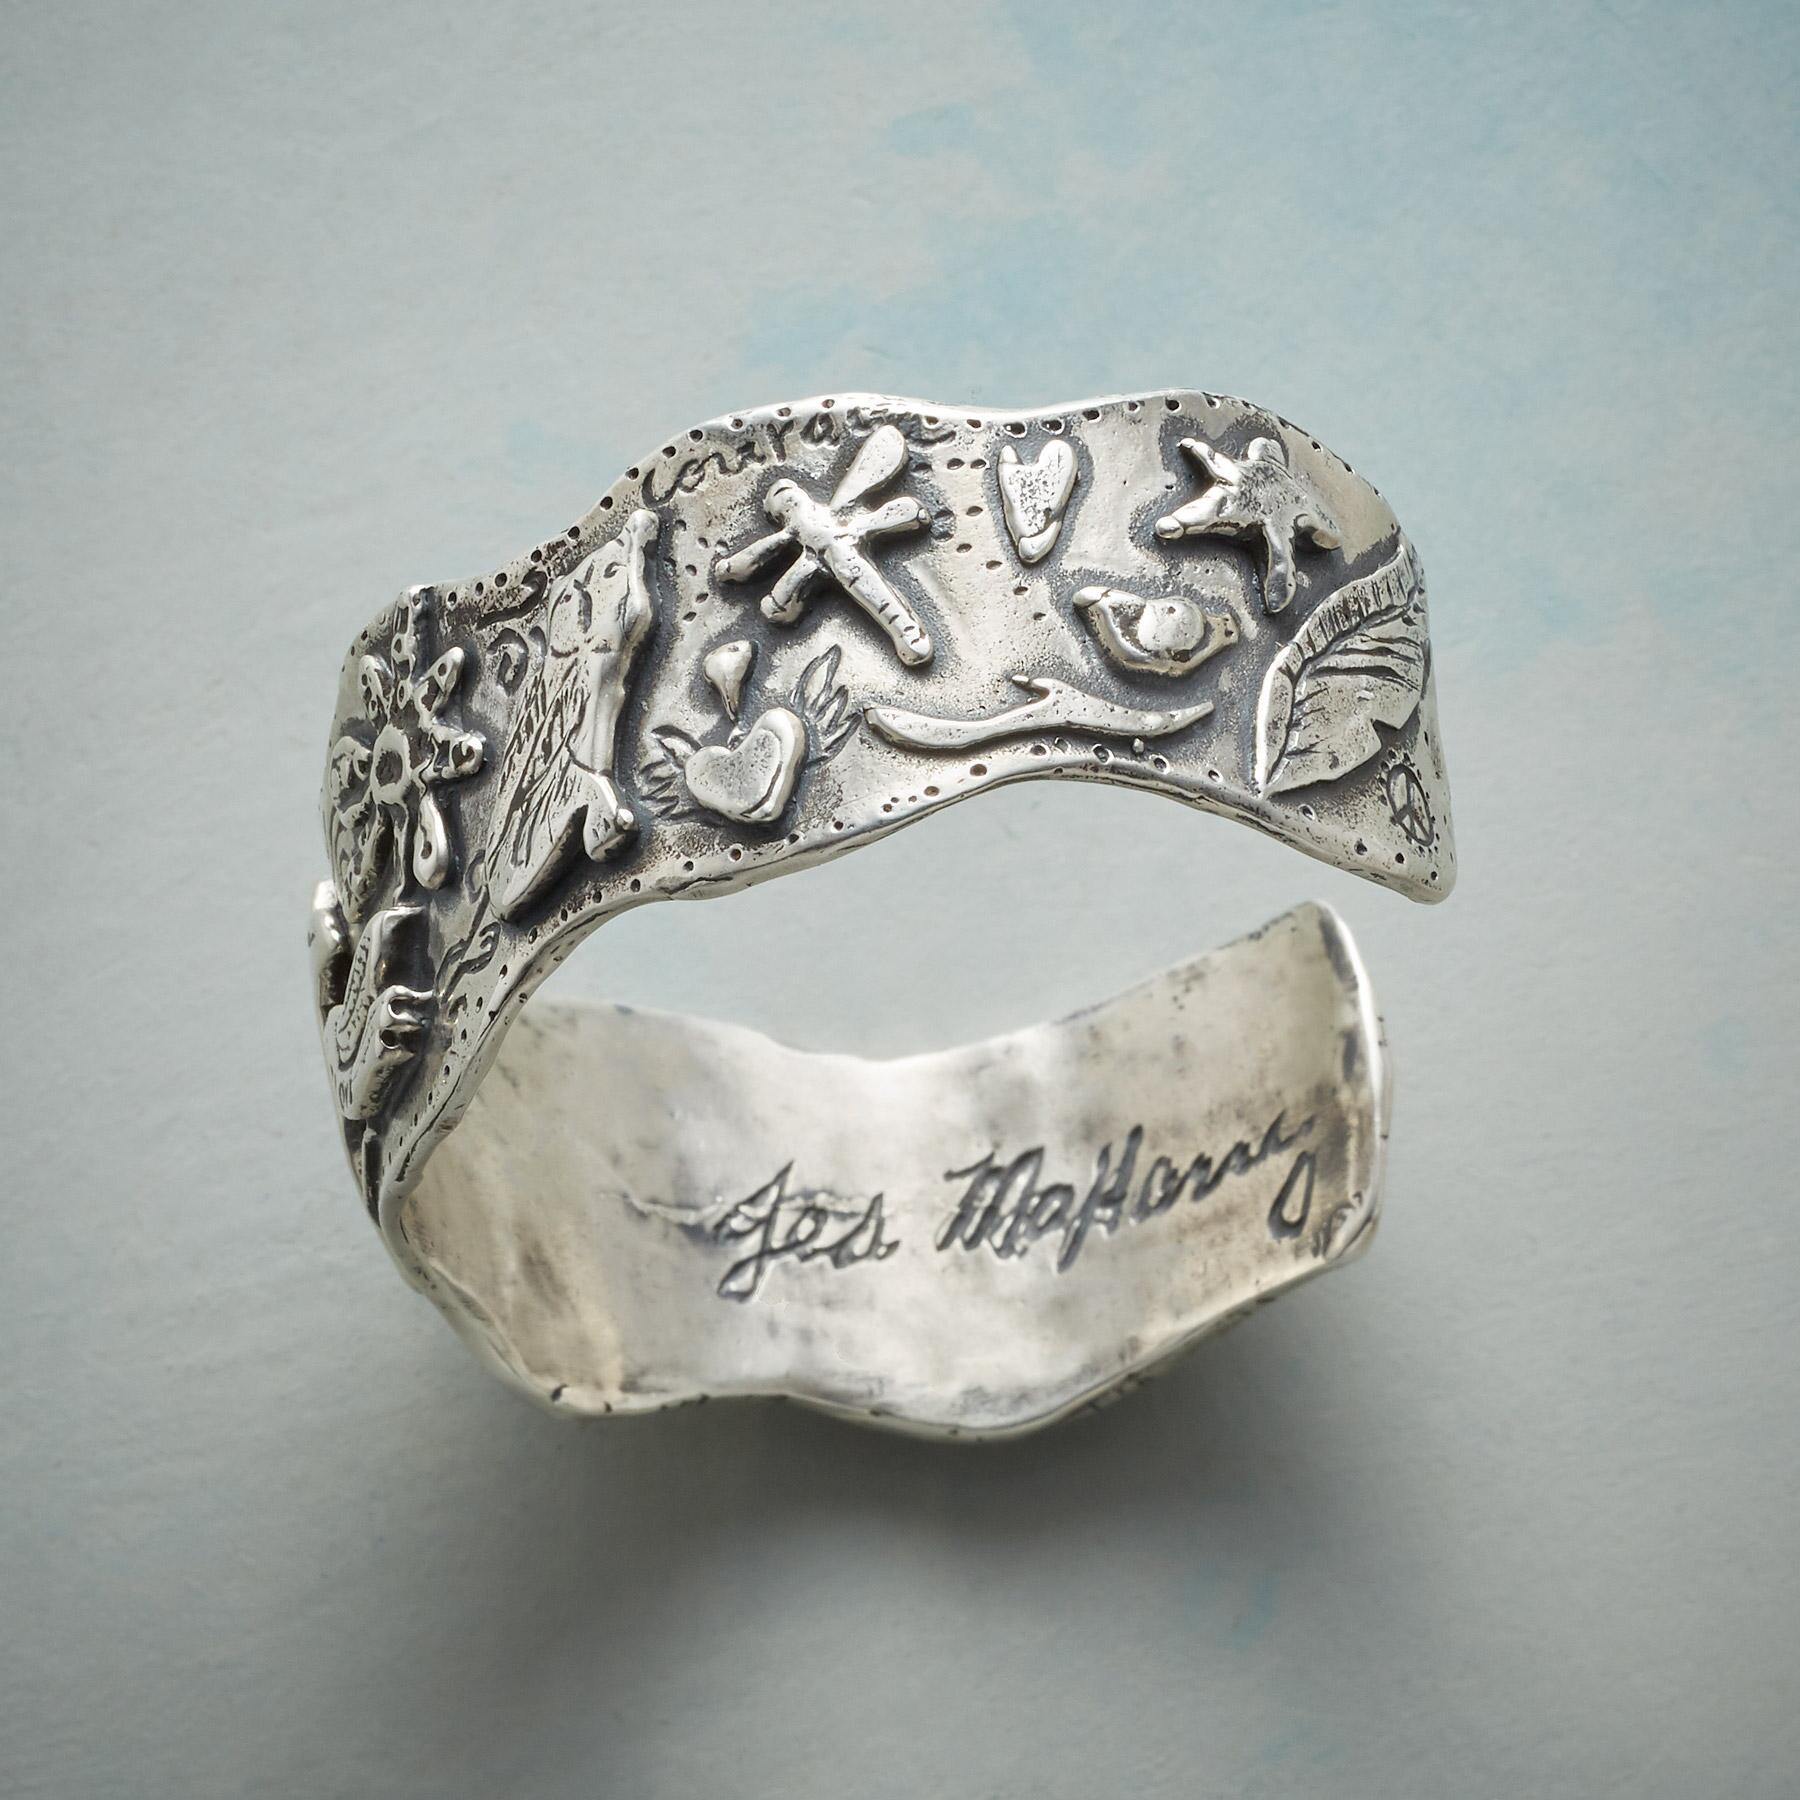 ALL THINGS CUFF BRACELET: View 2